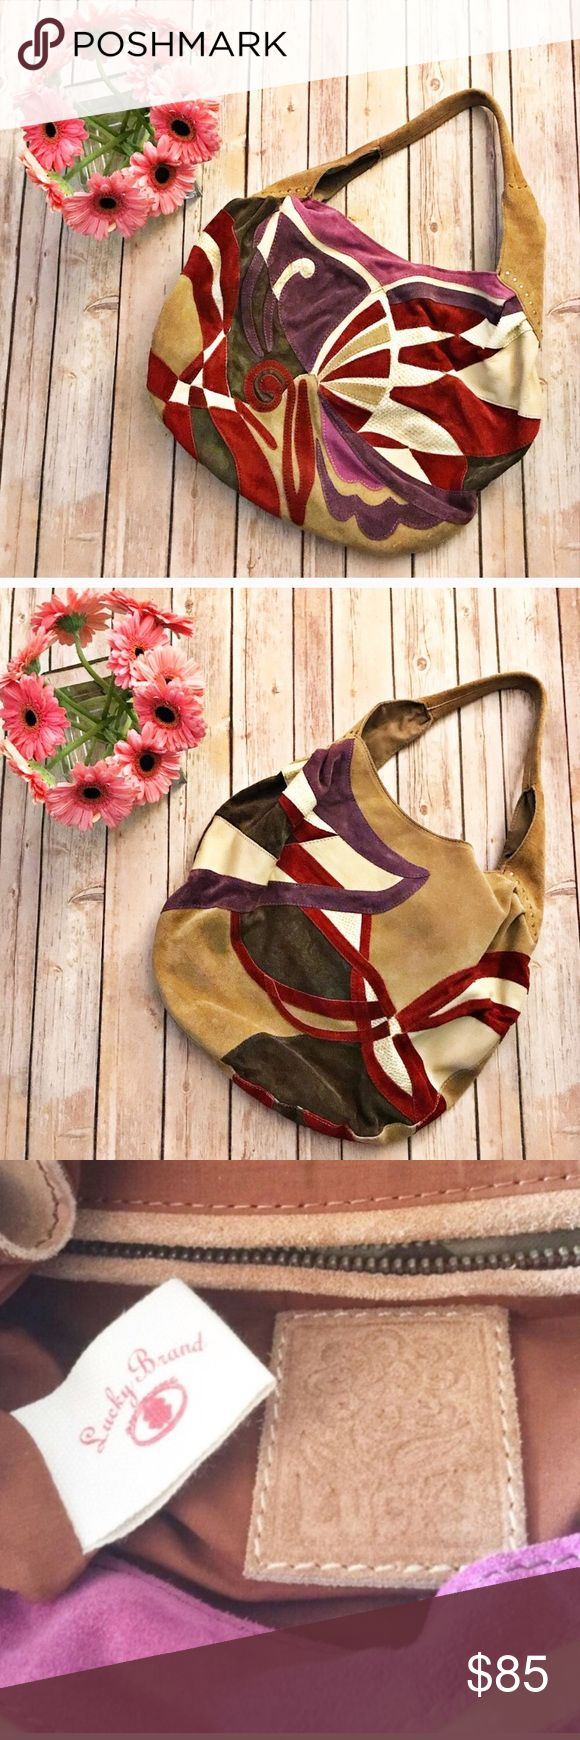 """Lucky Brand Suede Butterfly Bag EUC (only used once if even that really) Lucky Brand Purse with Butterfly design on front made with Suede and leather.  Colors are beige, tan, purple, and red.  Button closure, with inside zipper pocket, and two other interior pockets and a clasp for your keys.  14"""" deep. Comes with its dust bag.  Tan red purple and pink. Lucky Brand Bags Shoulder Bags"""